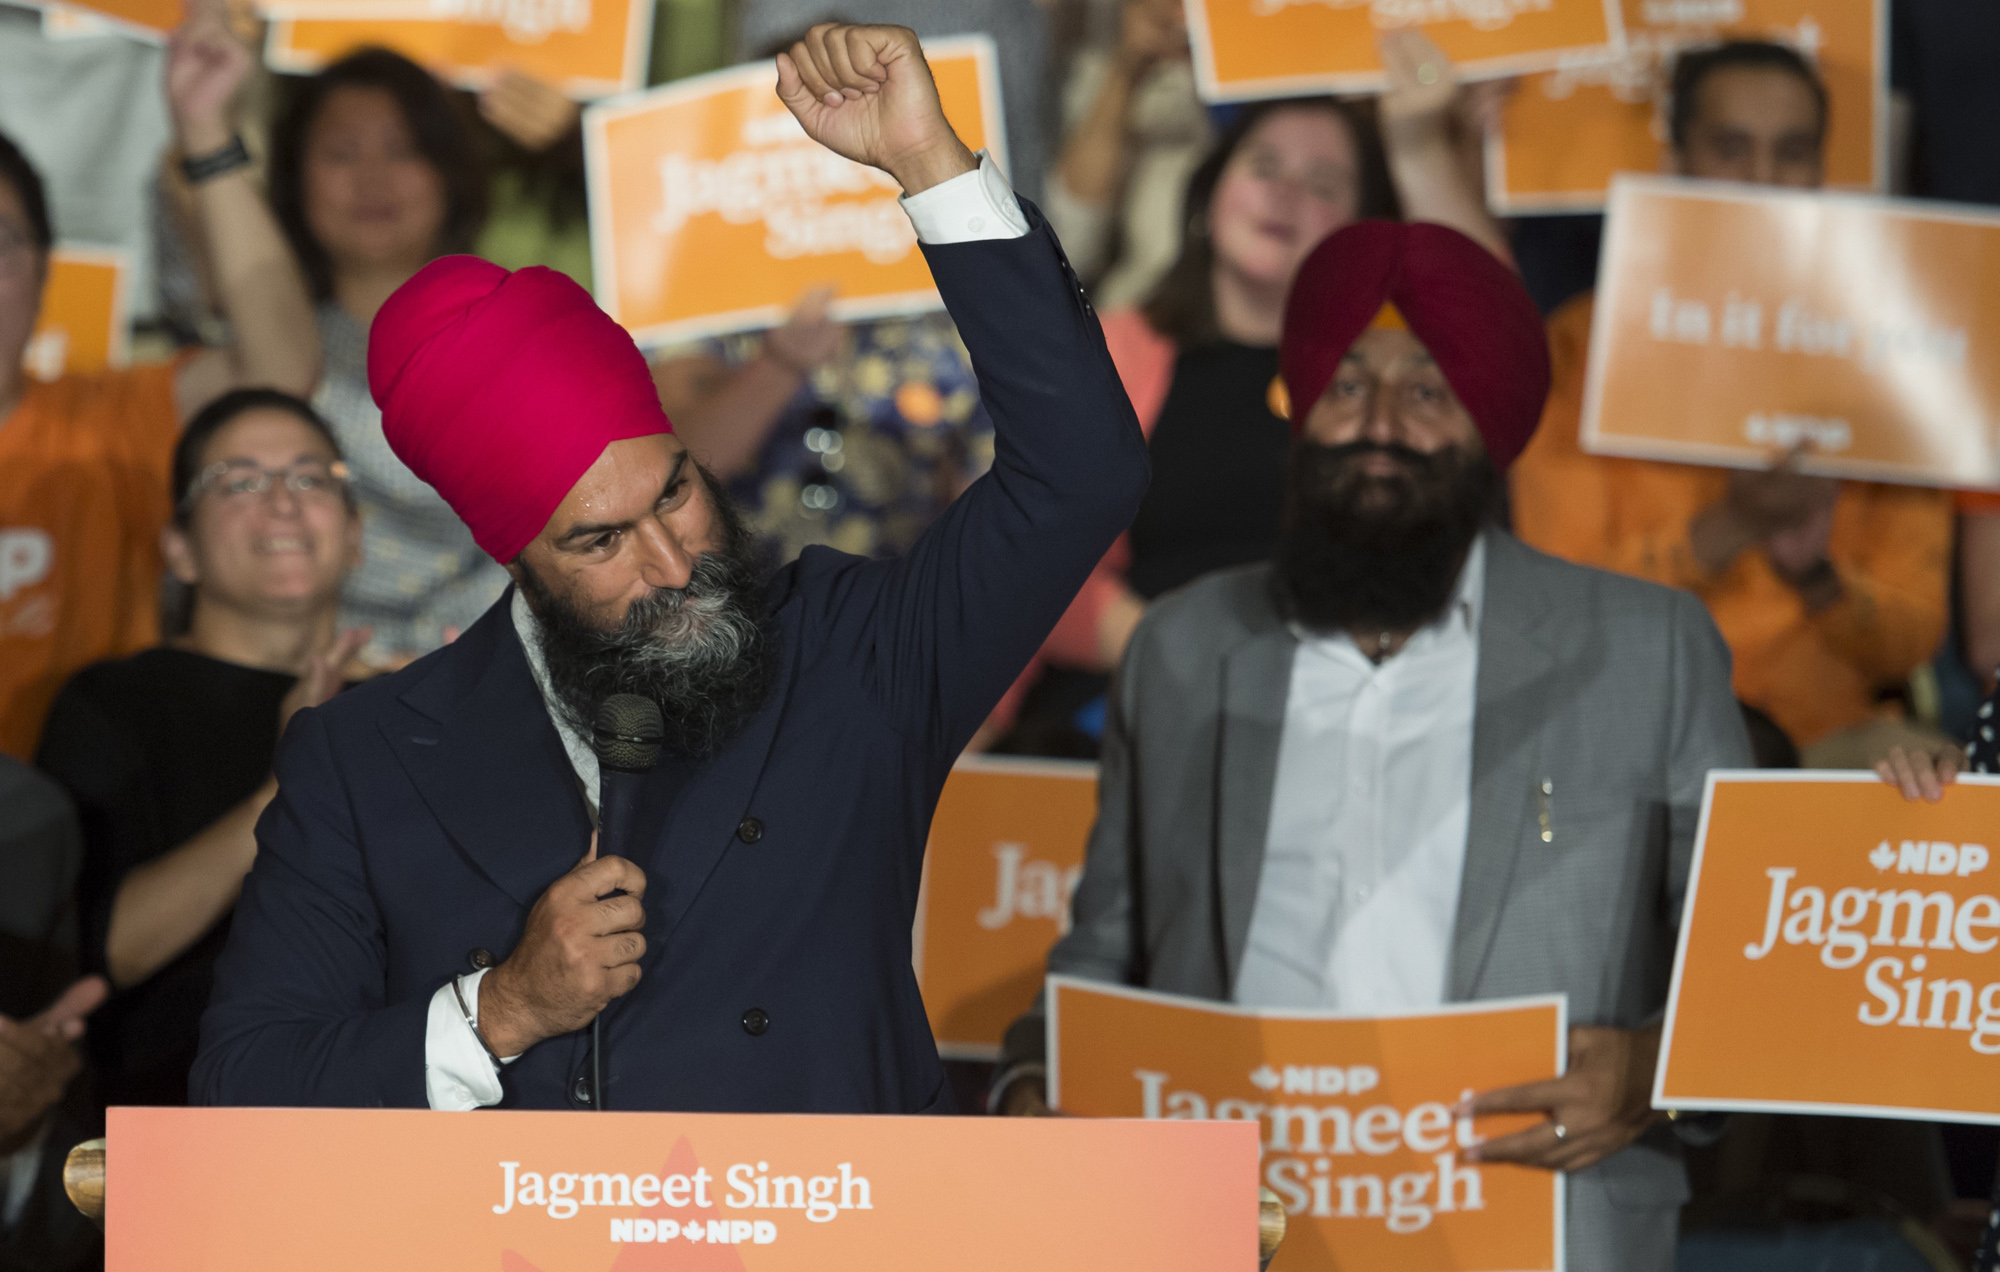 Is the NDP collapsing just as election season begins?